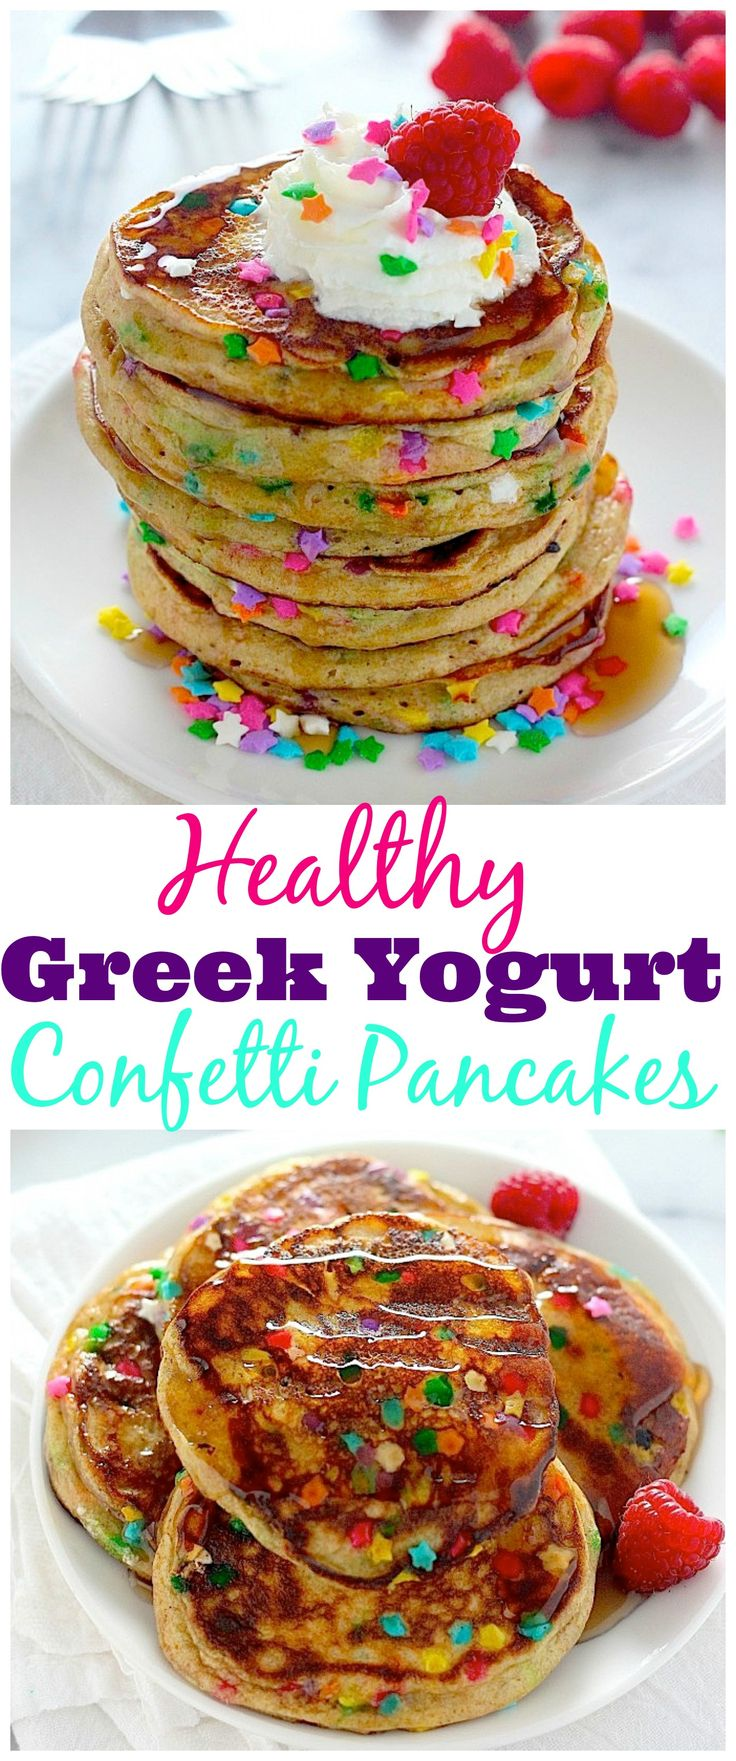 Healthy Greek Yogurt Confetti Pancakes